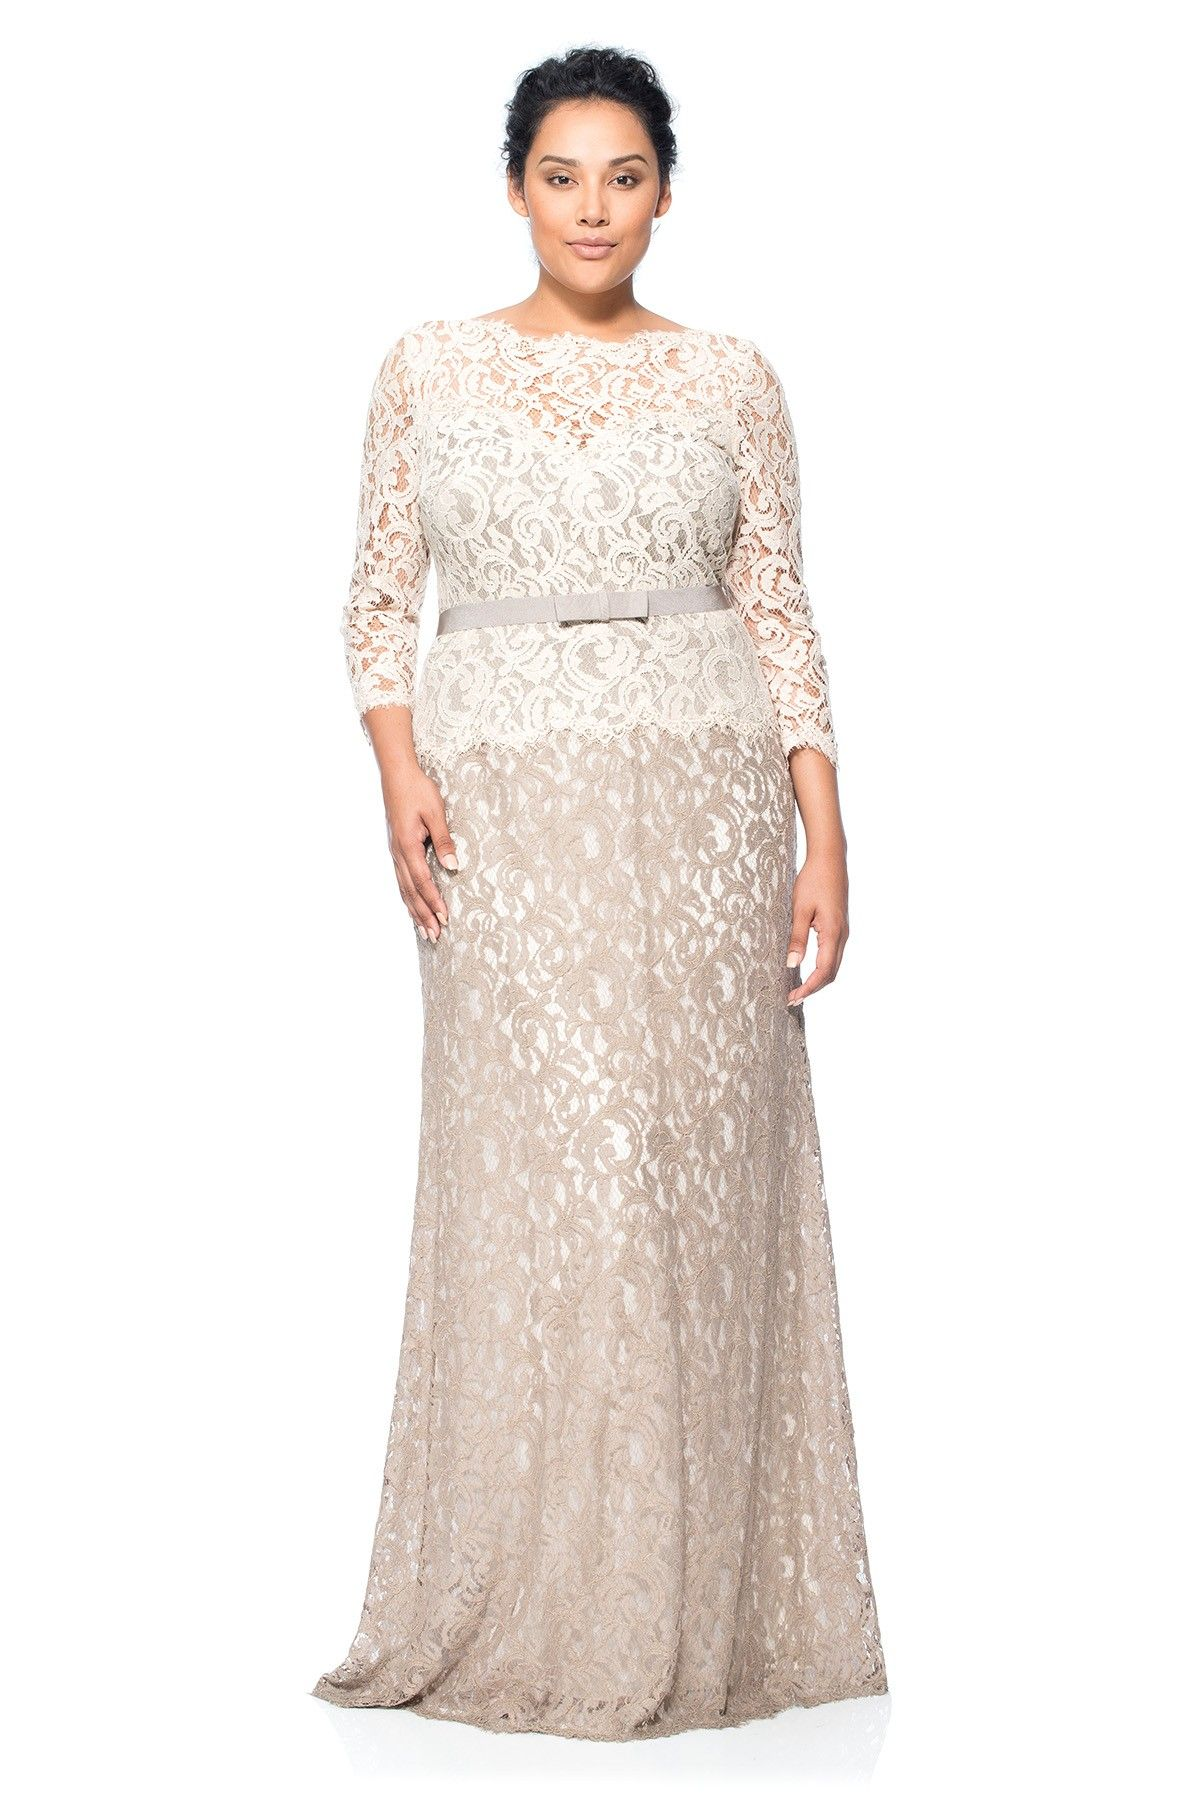 Lace Boatneck 3 4 Sleeve Gown With Grosgrain Ribbon Belt